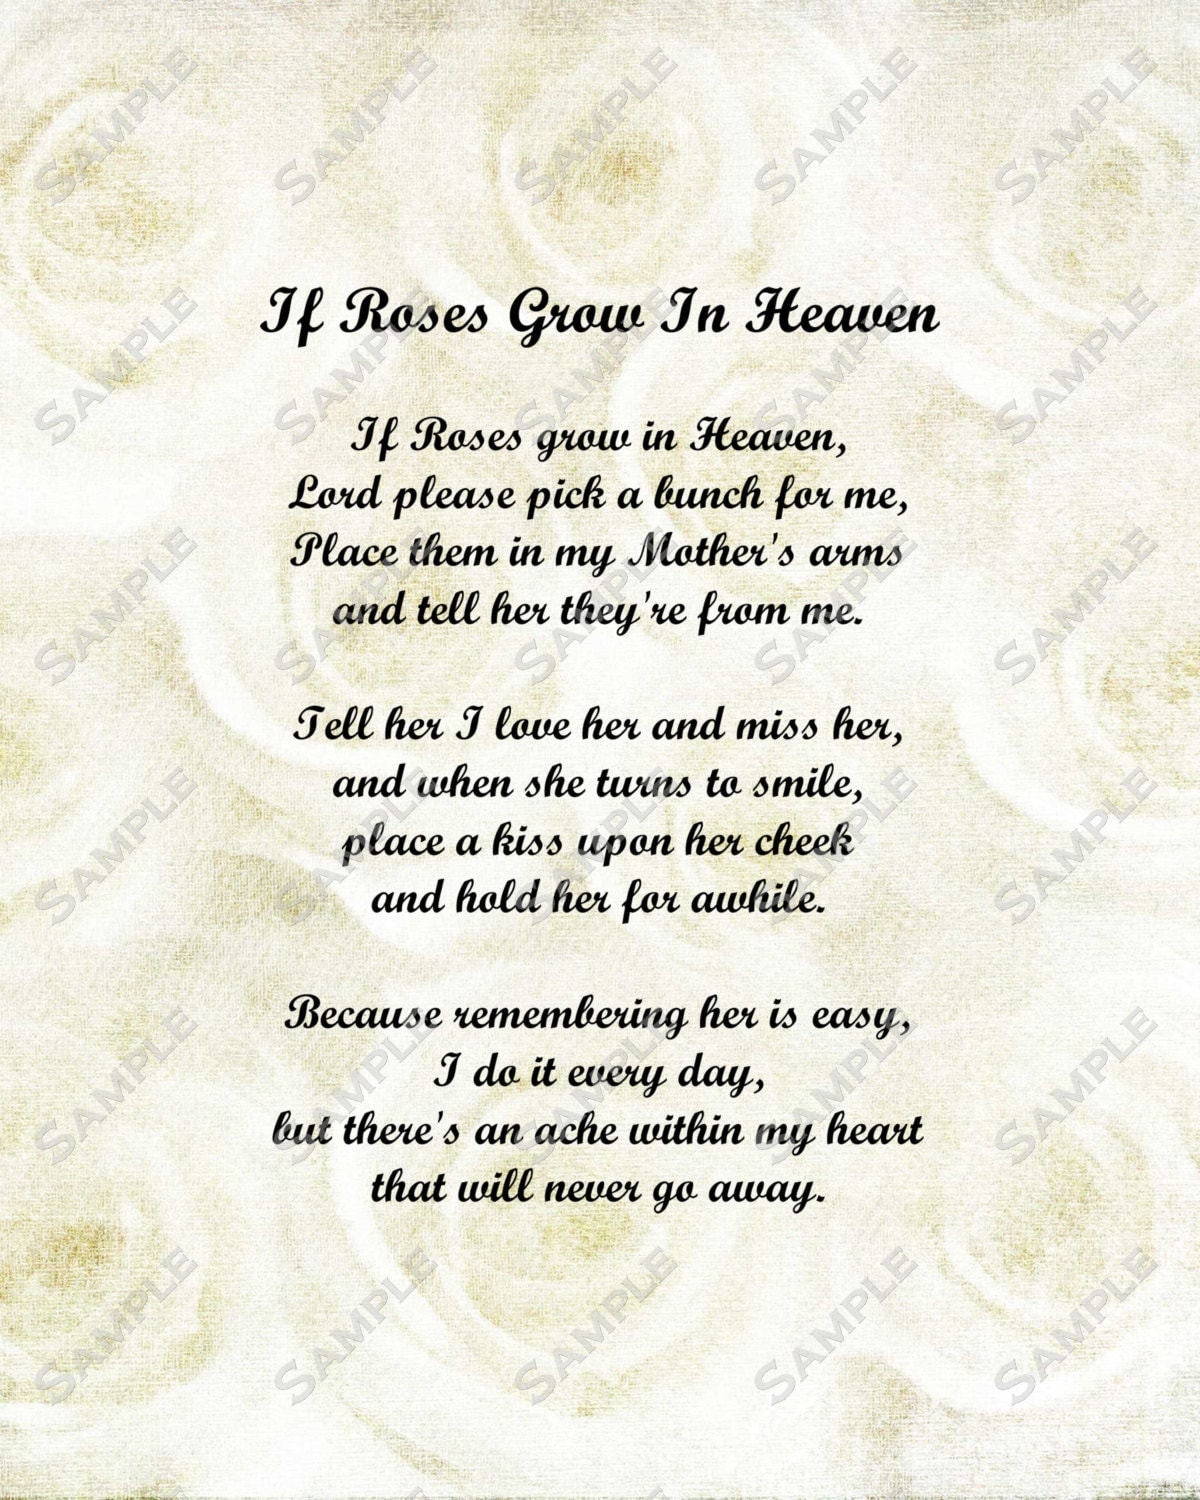 Missing My Mom In Heaven Quotes Birthday Quotes For Mom In Heaven Images